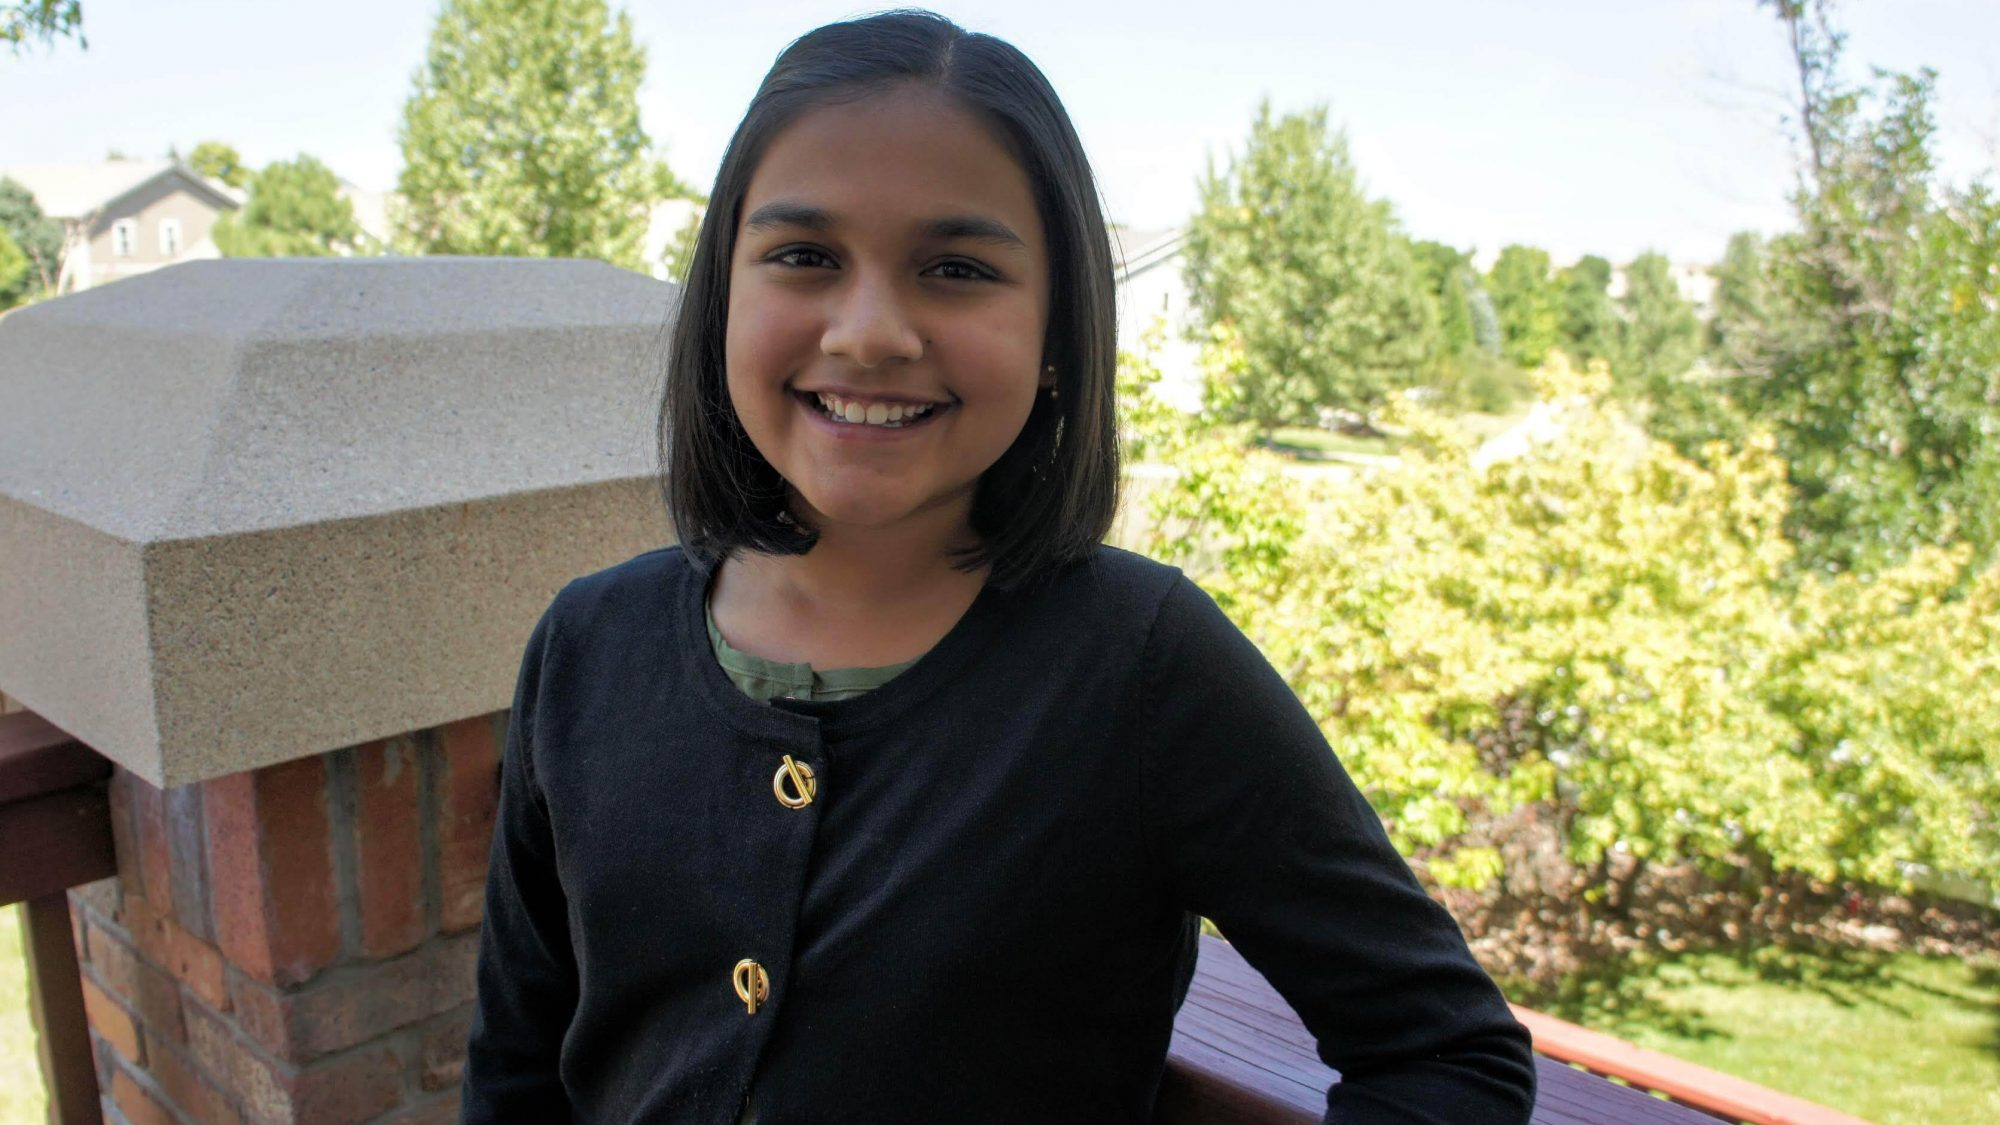 15-year-old Gitanjali Rao, founder of Kindly